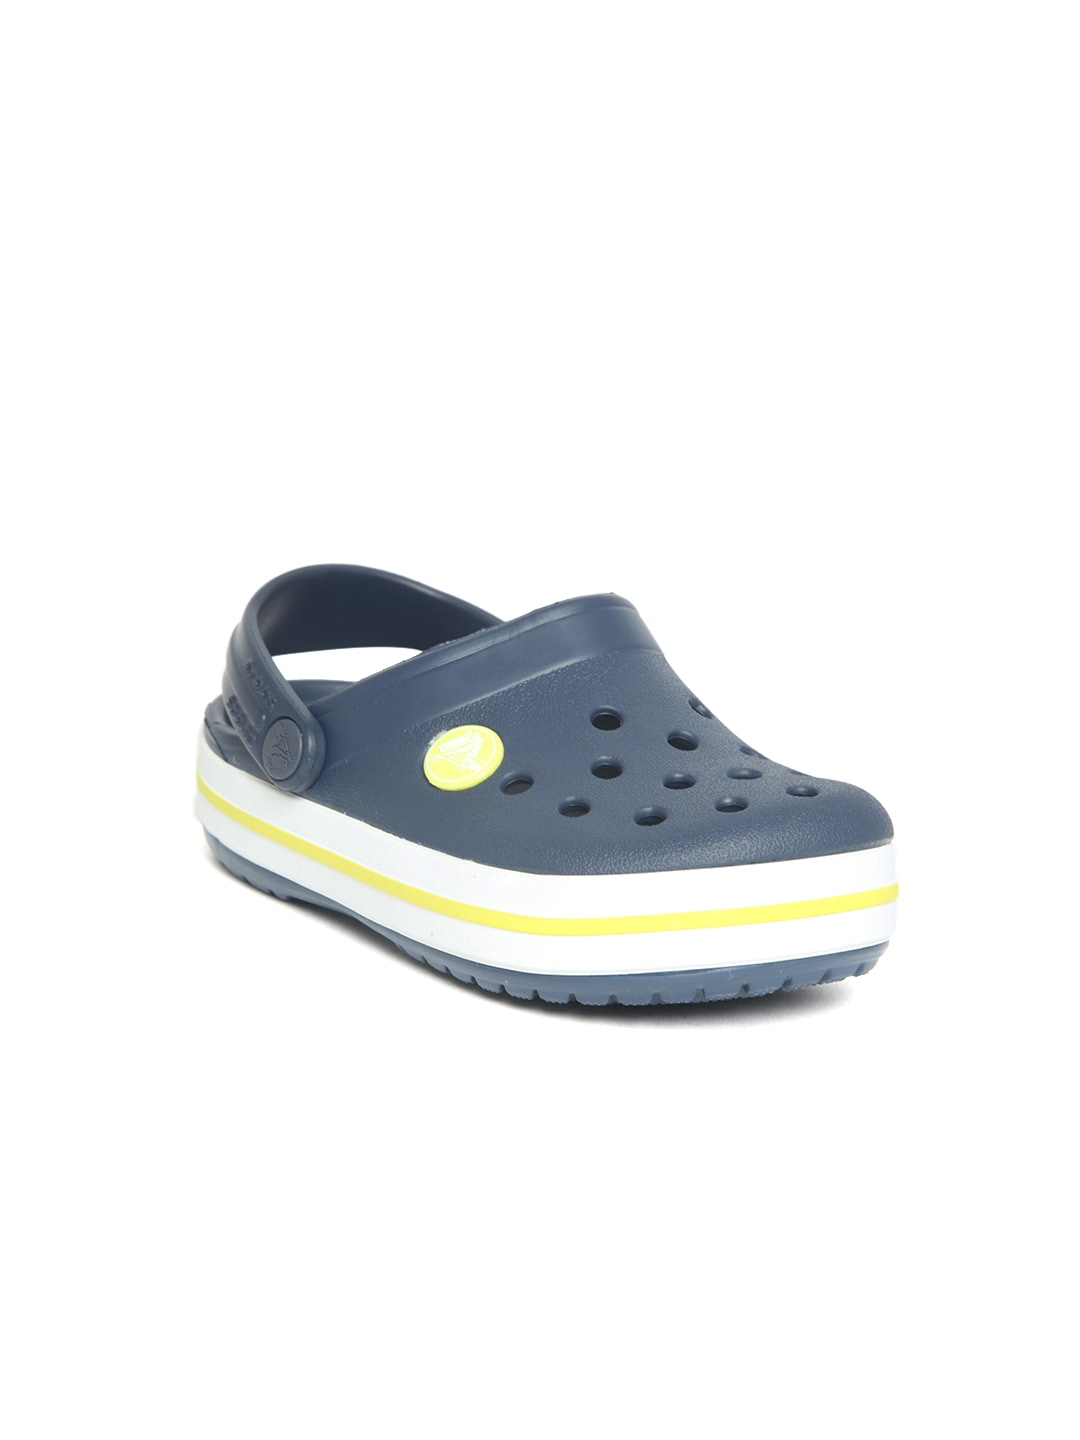 Crocs Kids Navy Blue Solid Clogs image